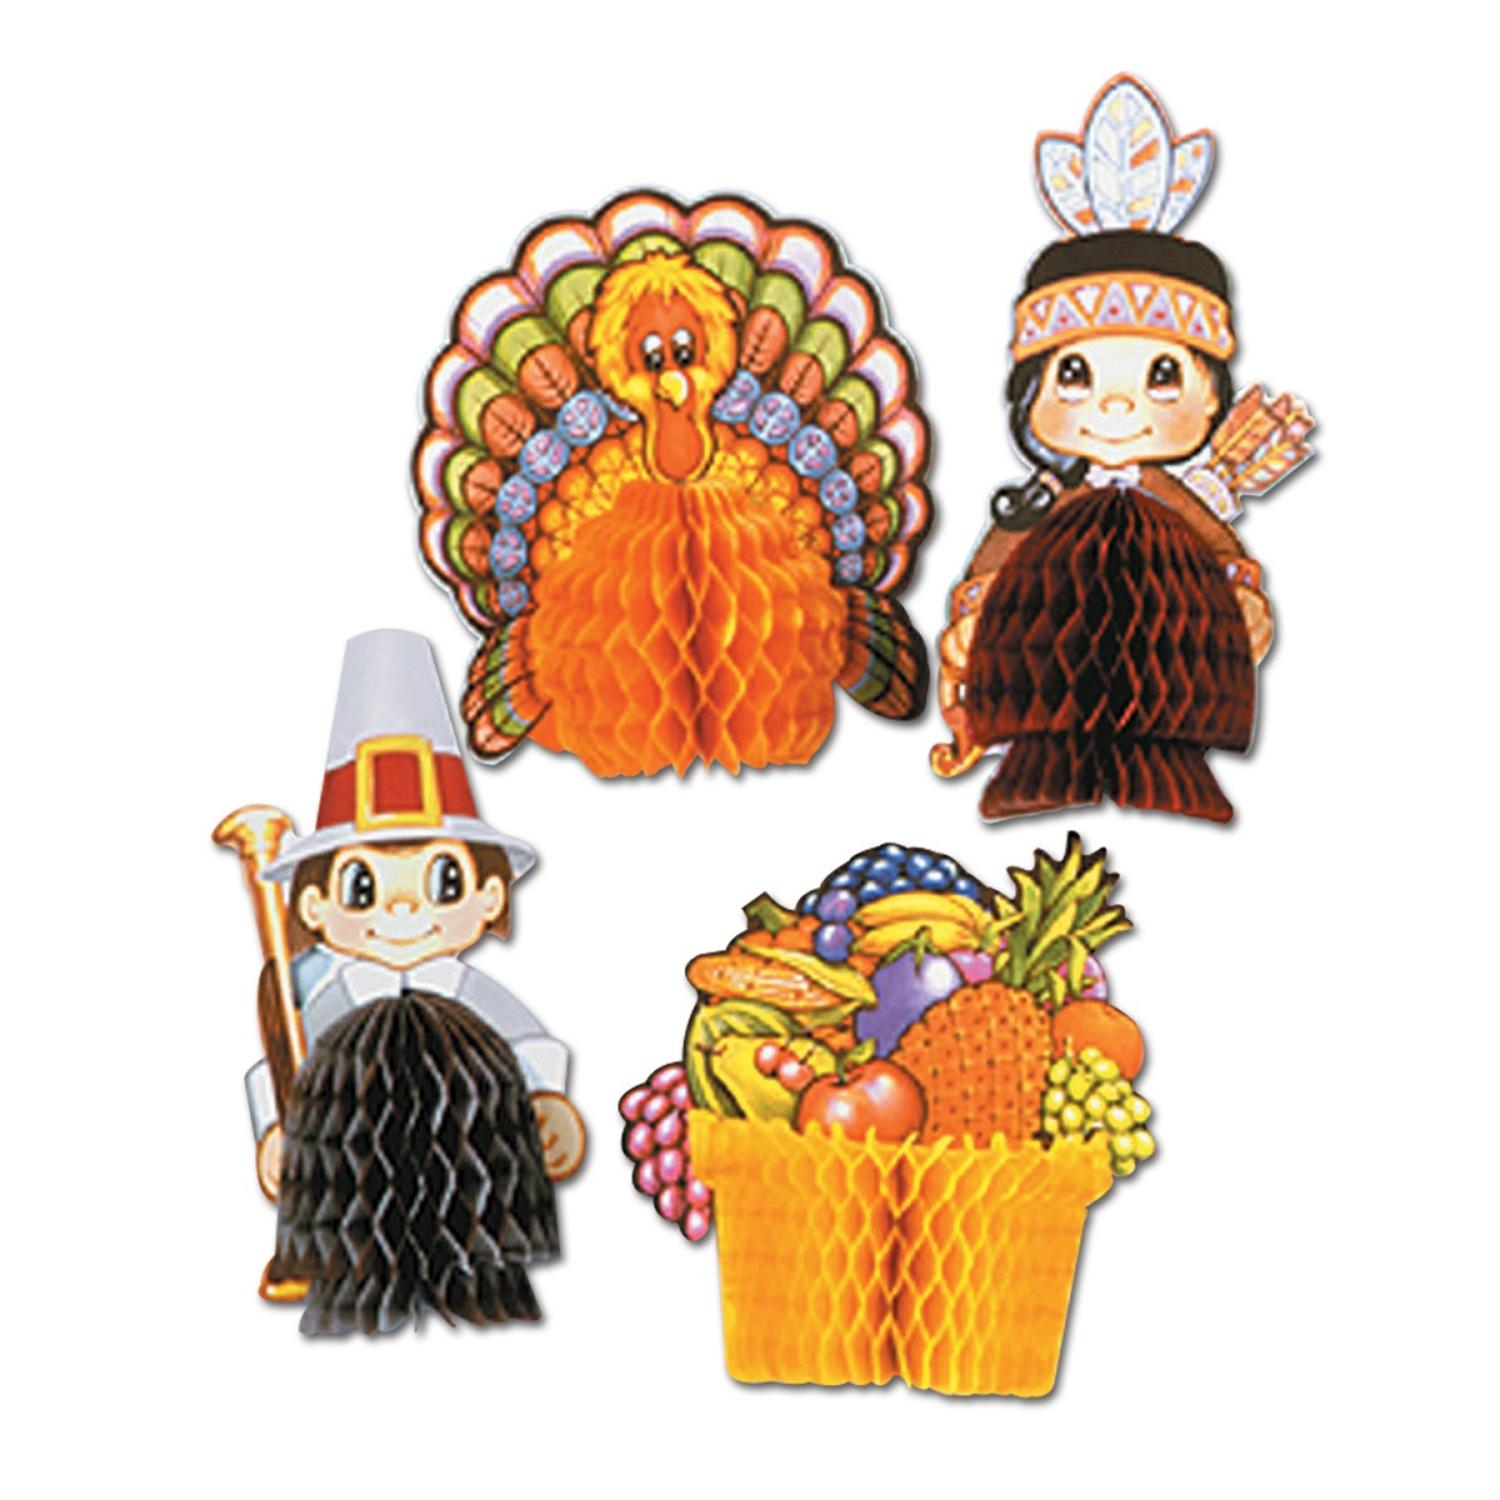 Club Pack of 48 Assorted Thanksgiving Playmates Tissue Table Centerpiece Decorations 5""